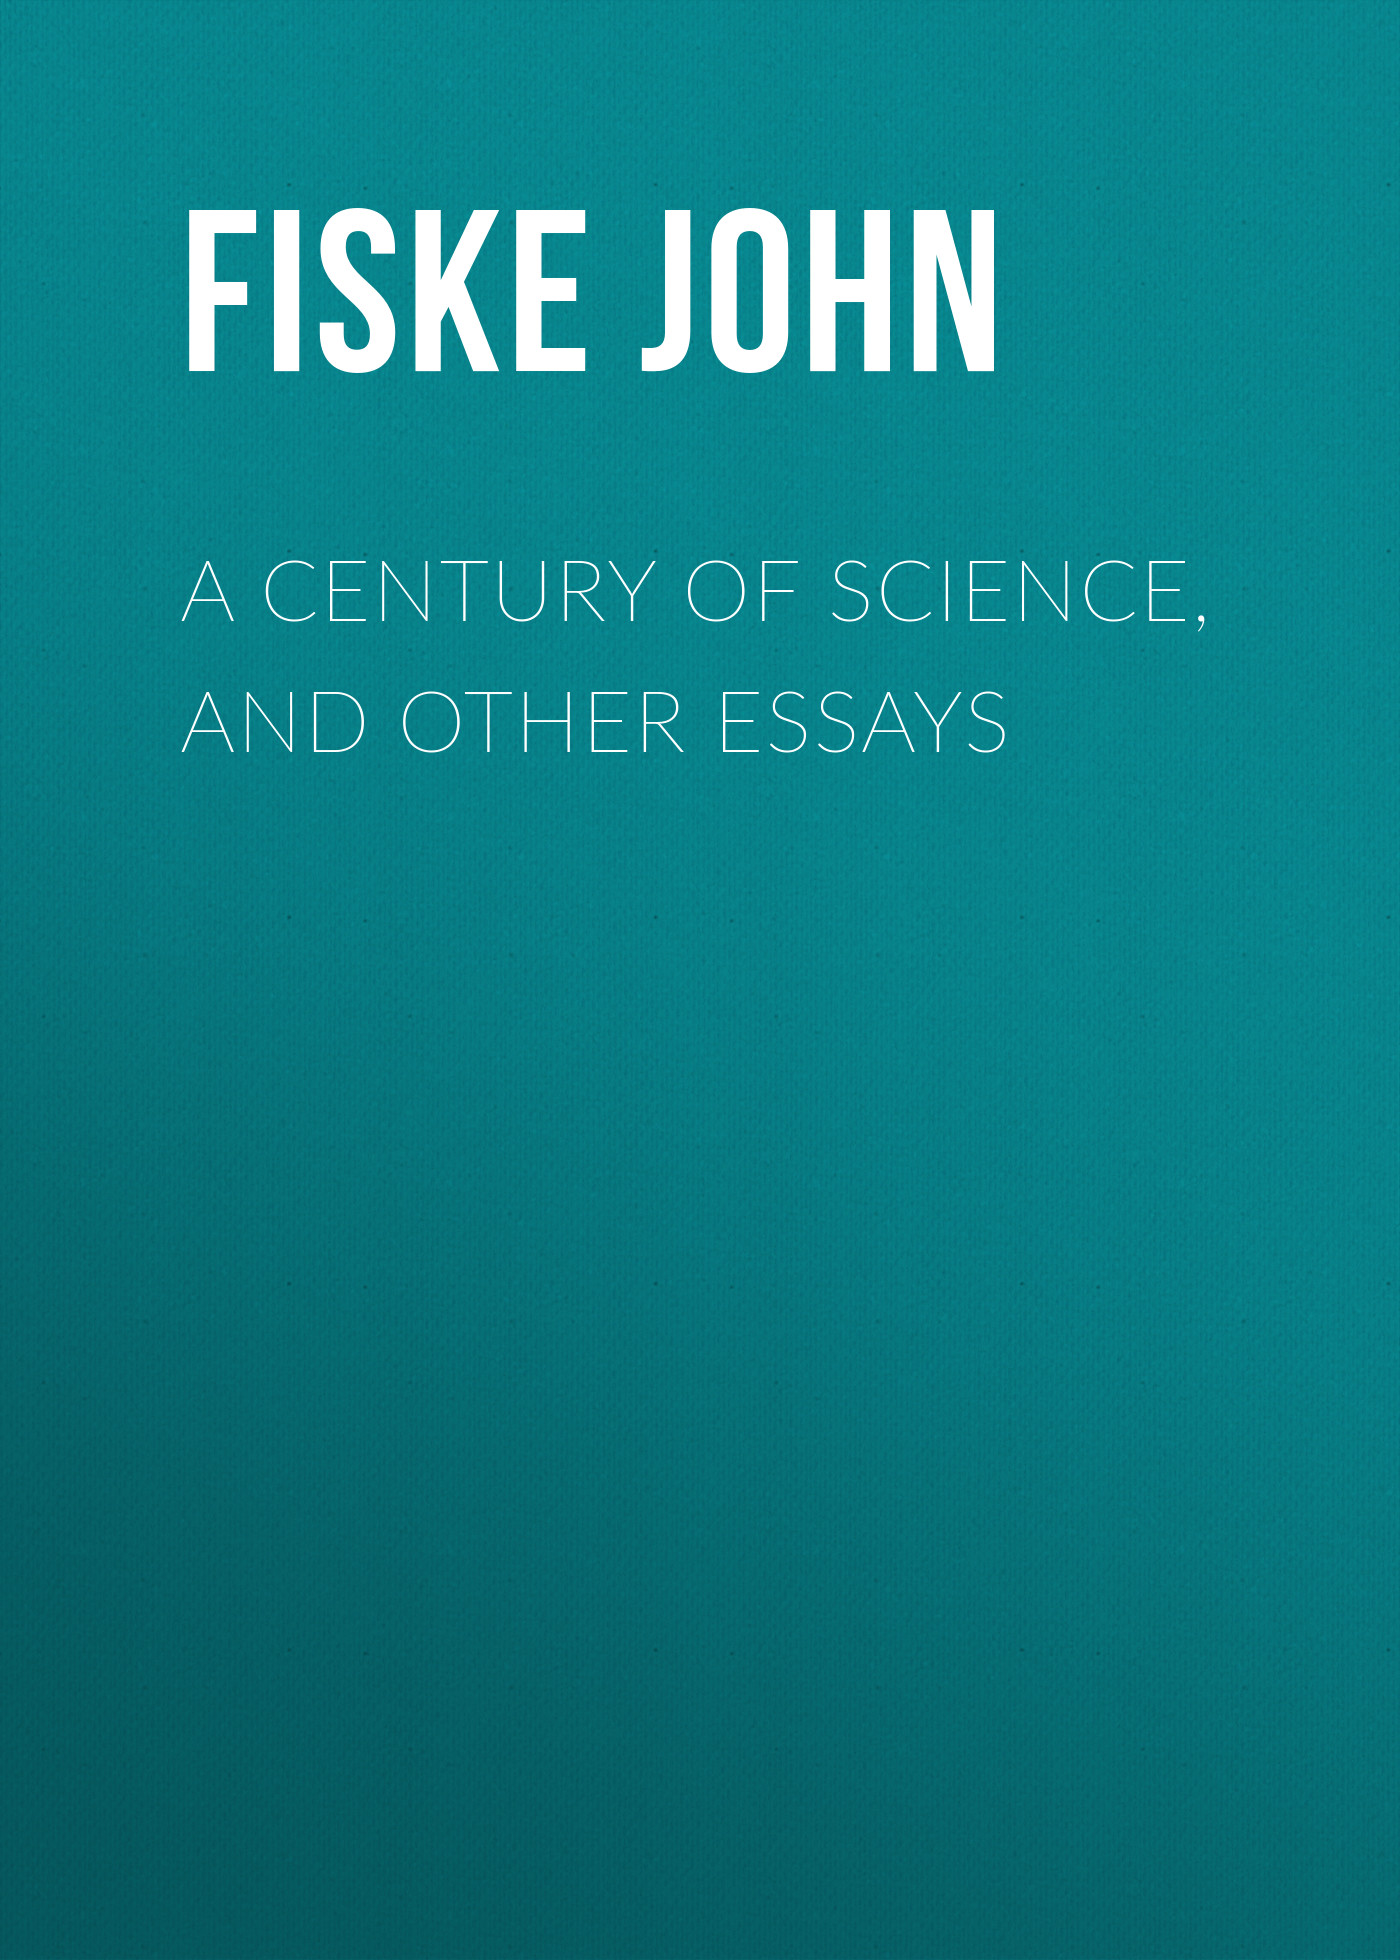 Fiske John A Century of Science, and Other Essays fiske john tobacco and alcohol